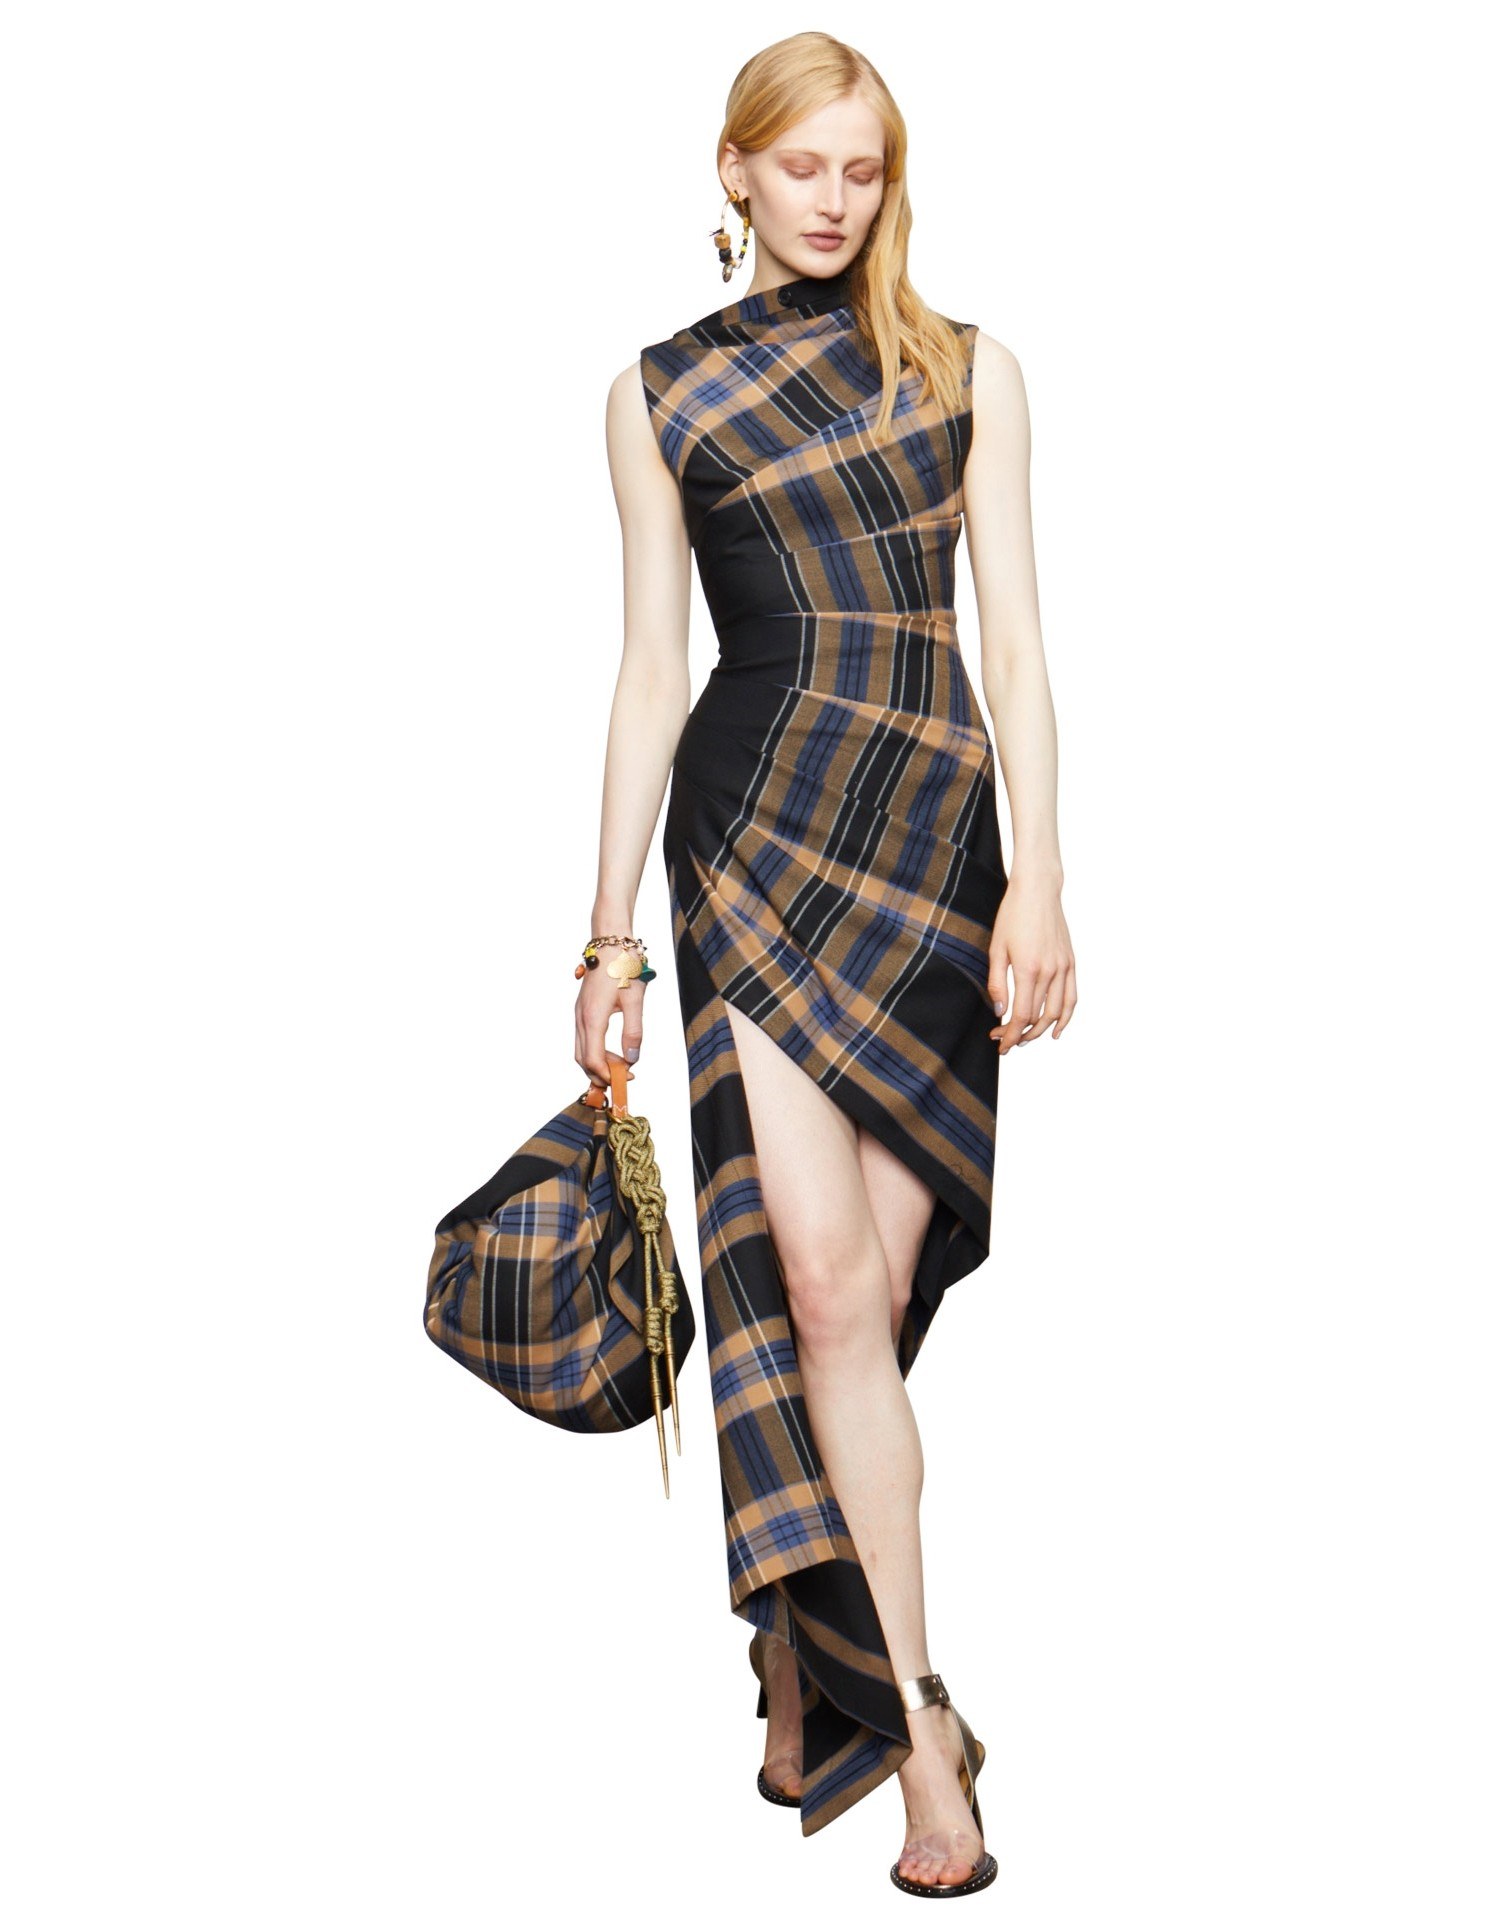 MONSE Plaid Pleated Sleeveless Dress on Model Front View